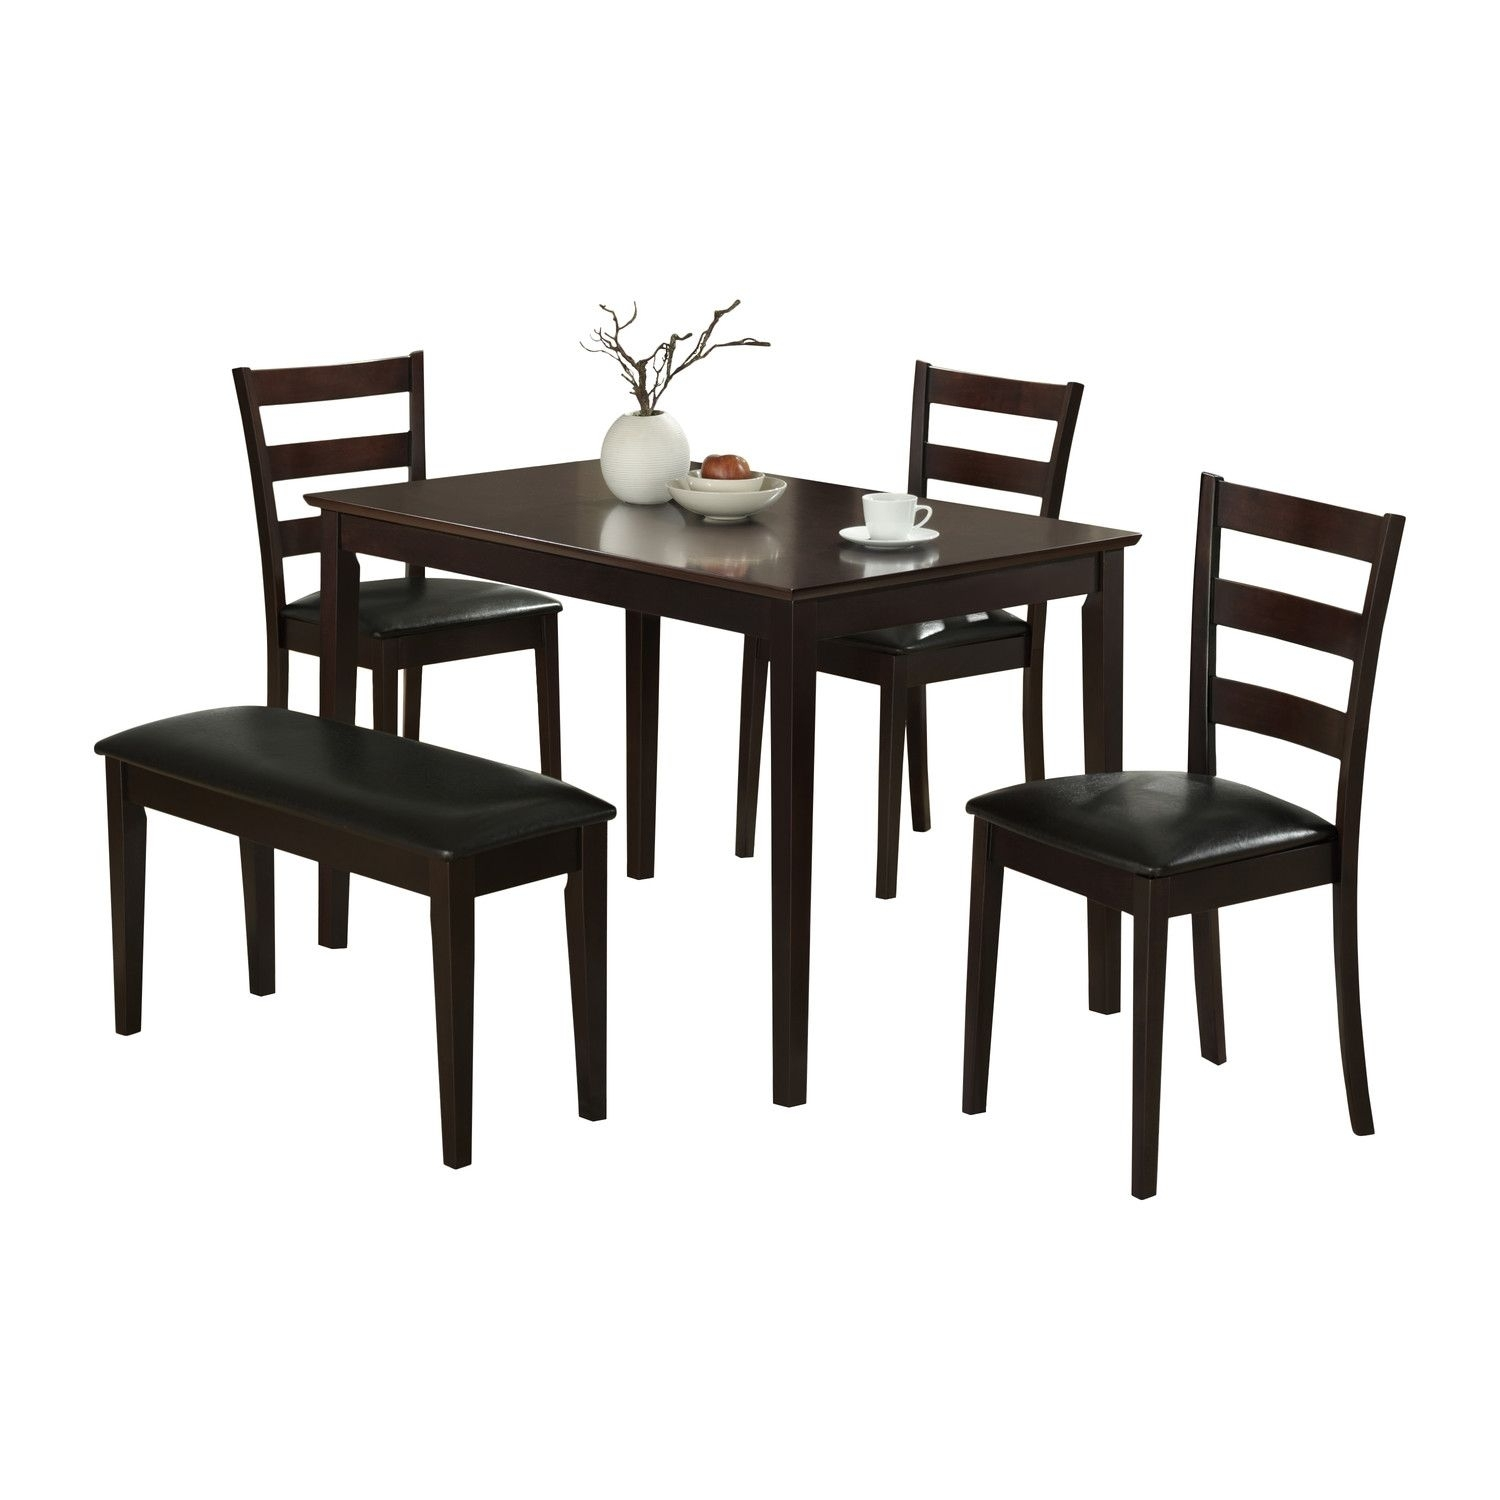 5 Piece Dining Set | Home | Pinterest In Most Popular Kirsten 5 Piece Dining Sets (Image 1 of 20)